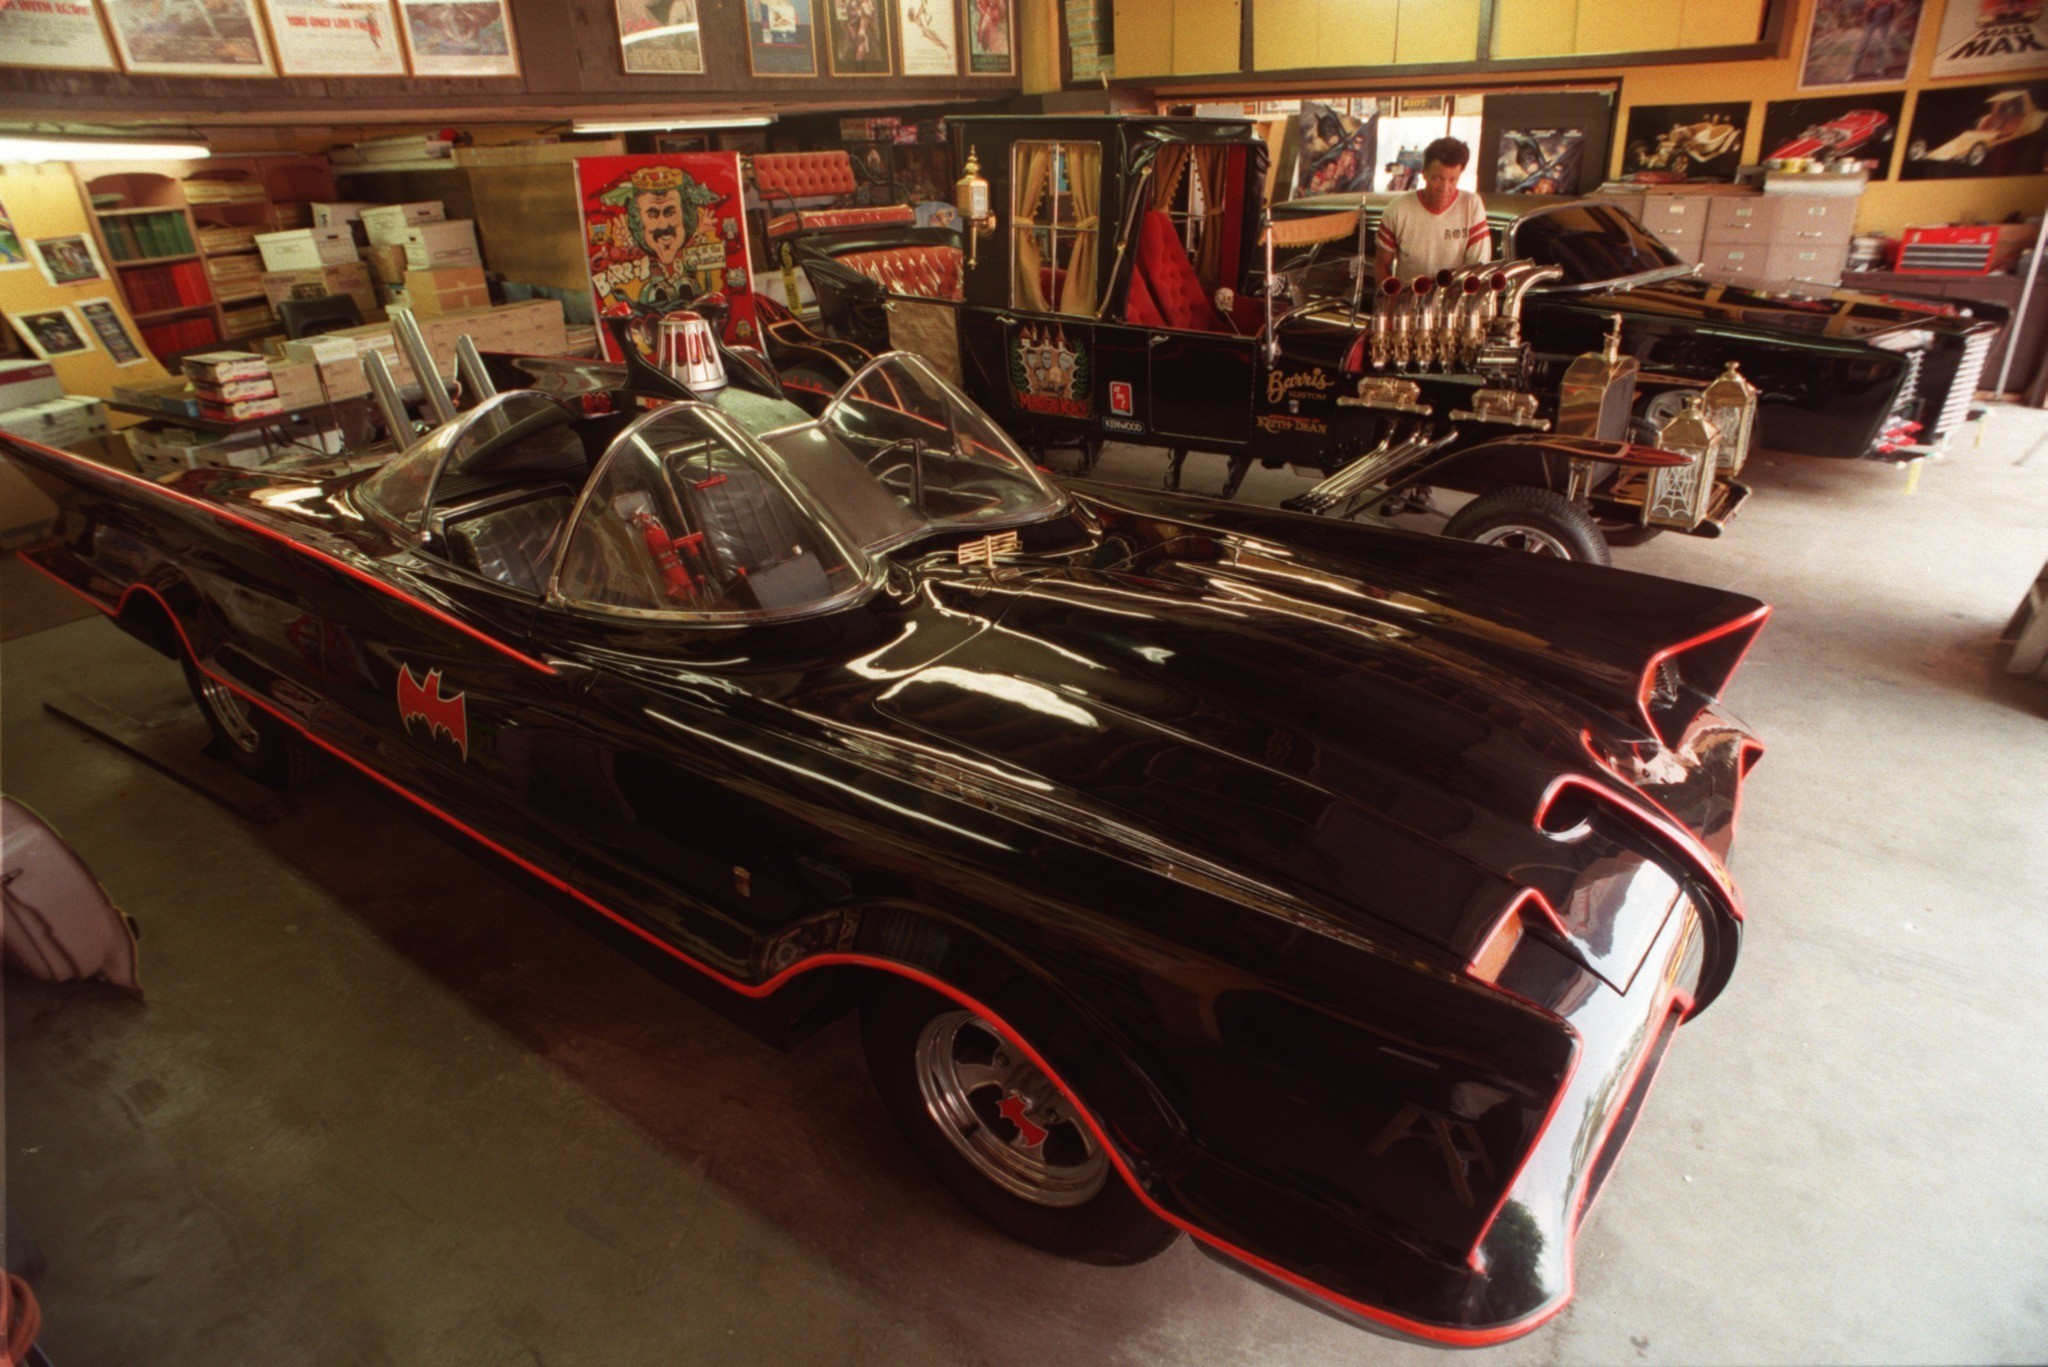 The original Batmobile - Batmobile